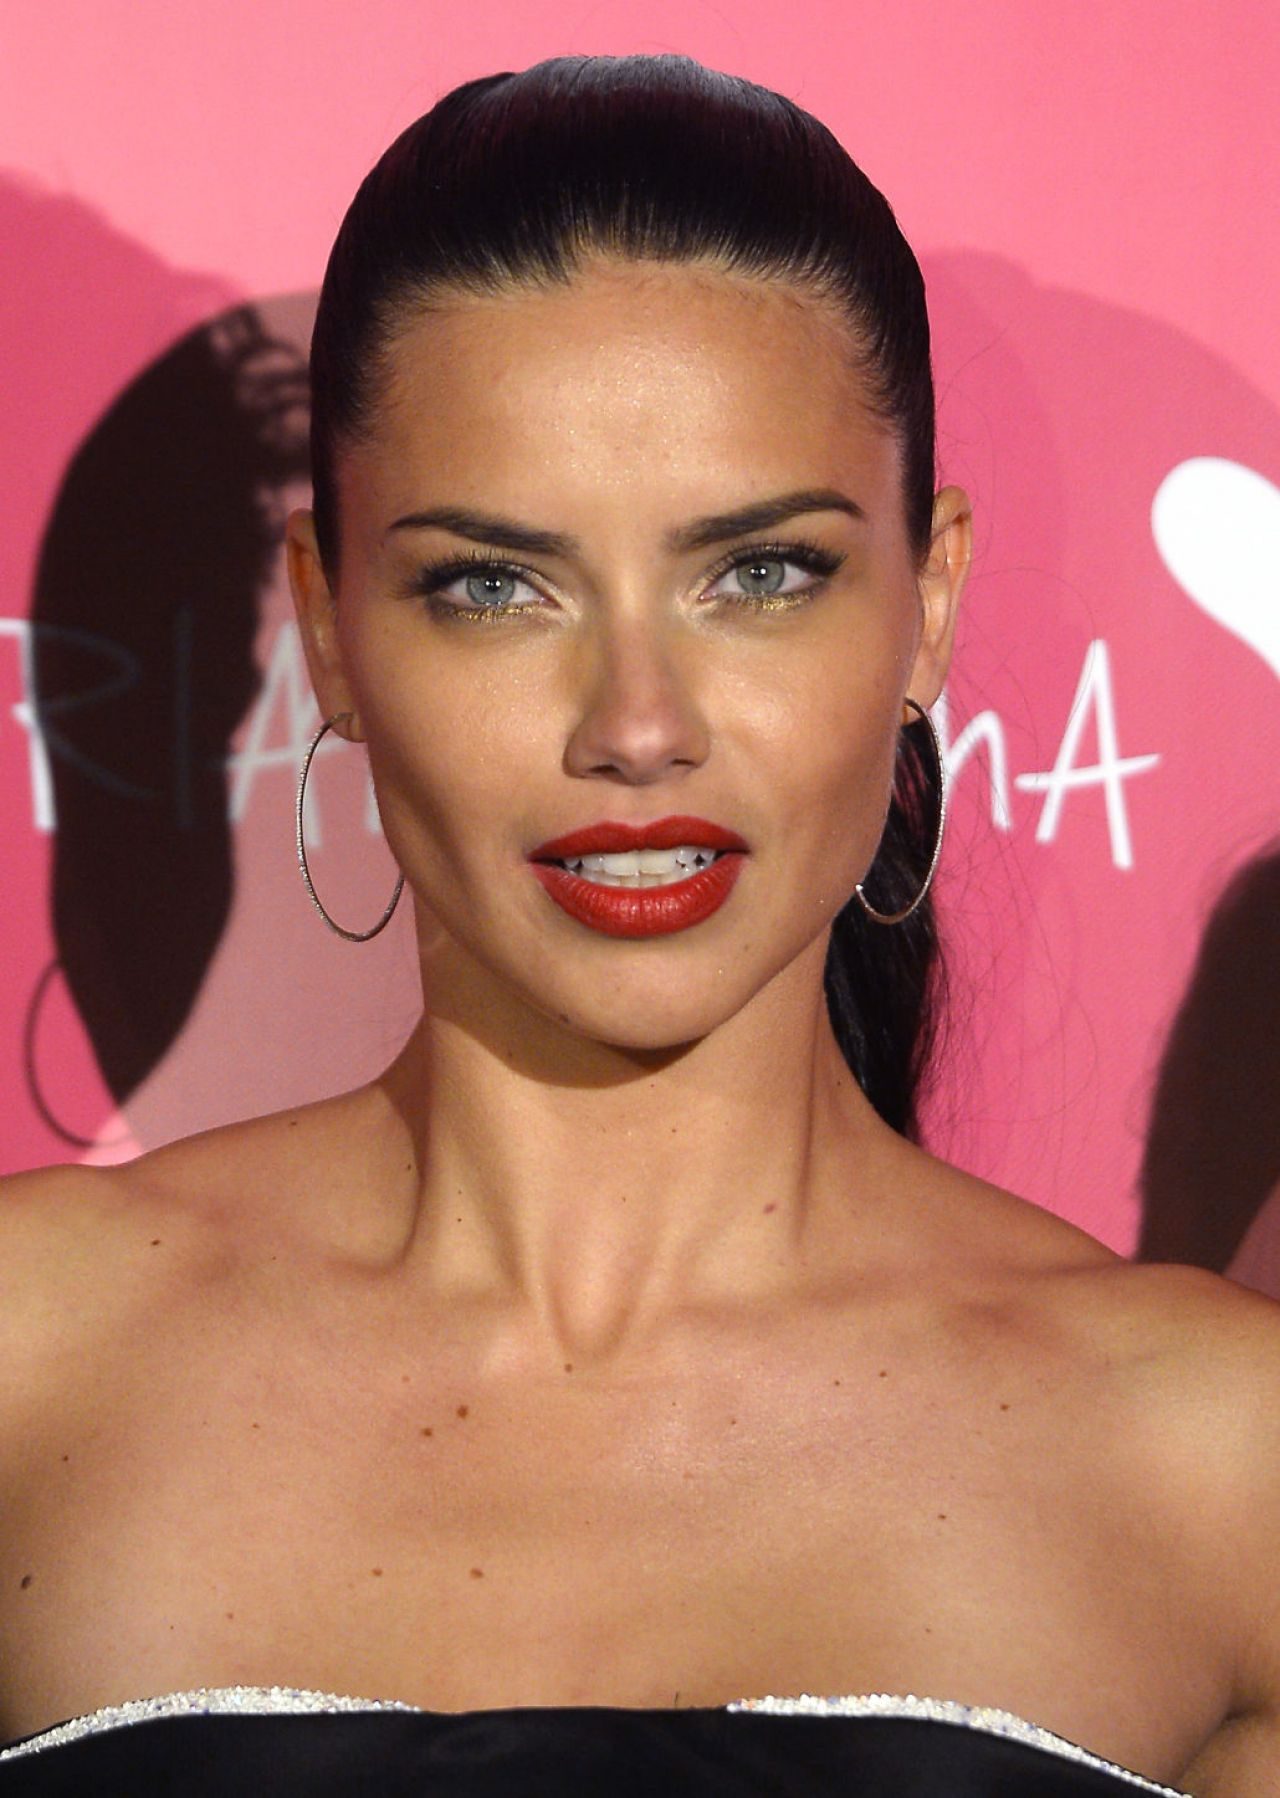 Adriana Lima In Istanbul Promoting Veet Naturals April